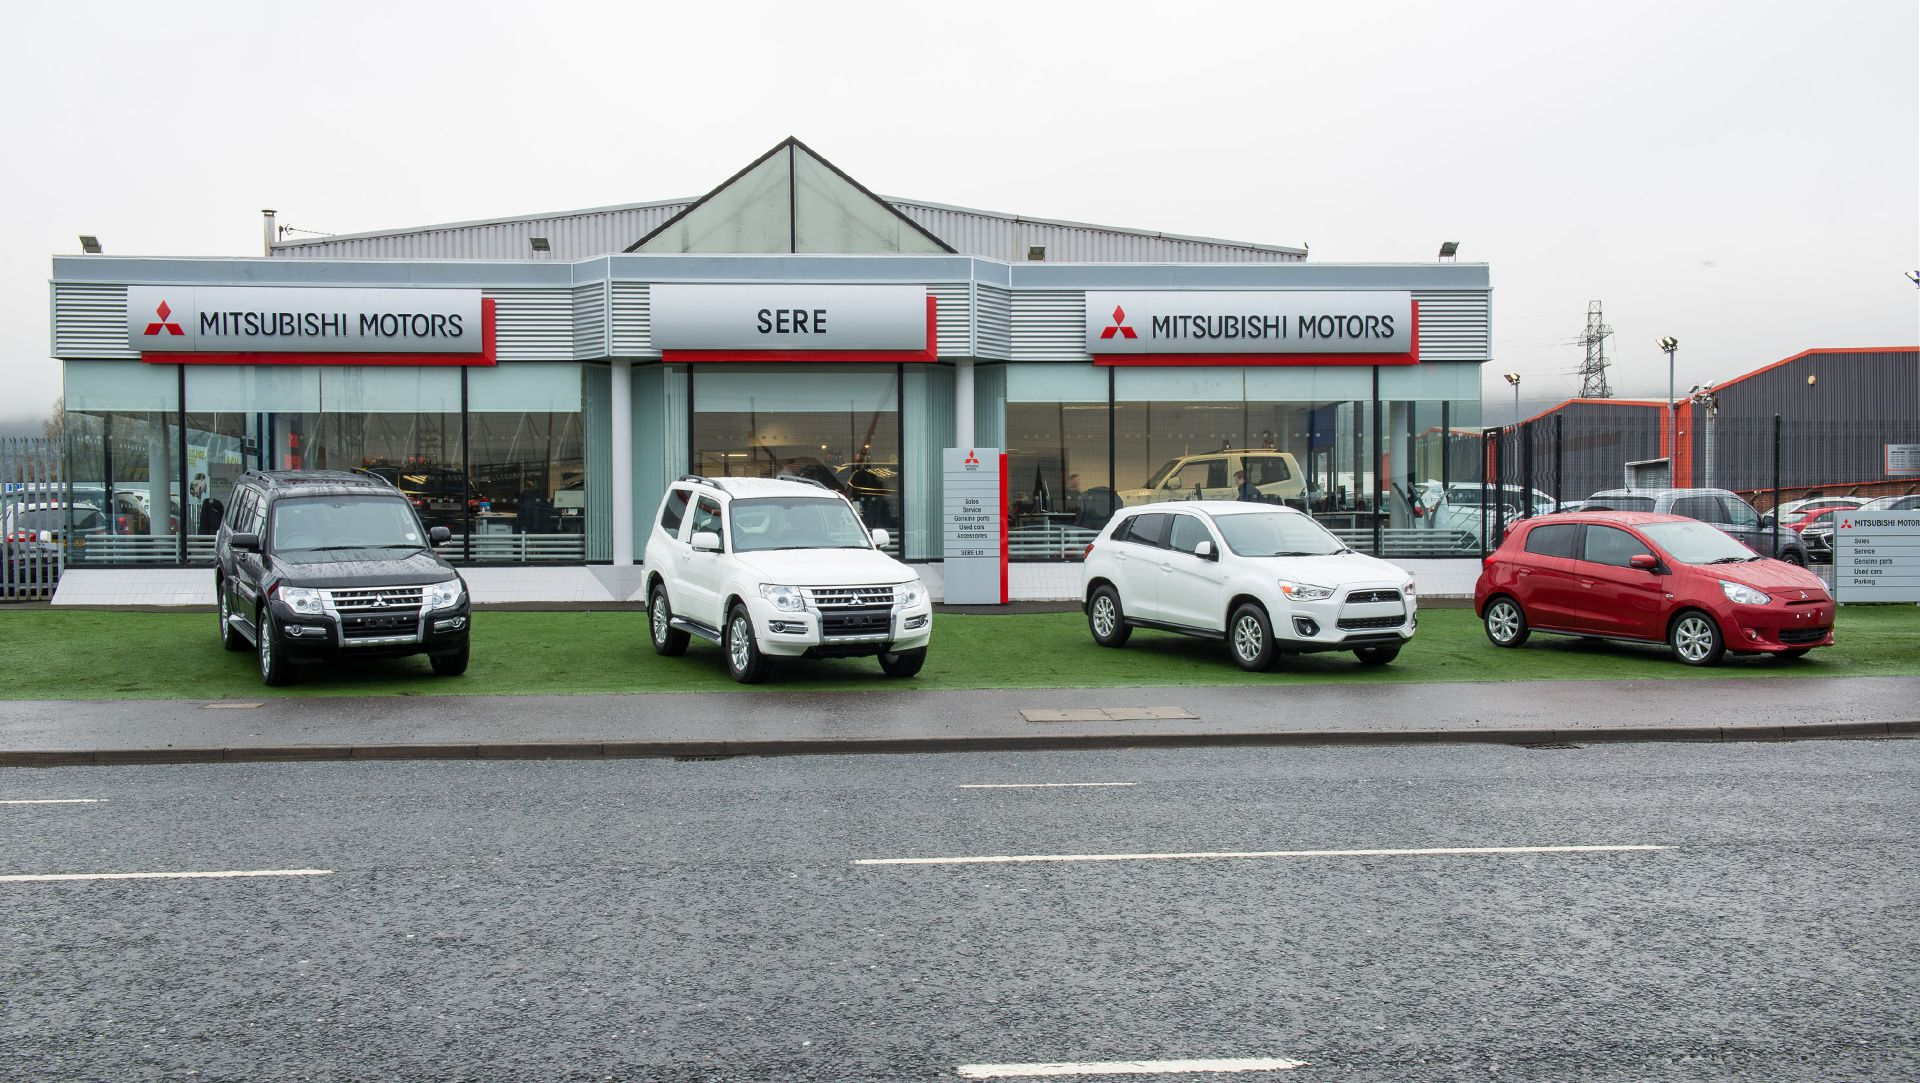 New Mitsubishi Dealership Opens In Northern Ireland Auto Moto - Mitsubishi local dealers